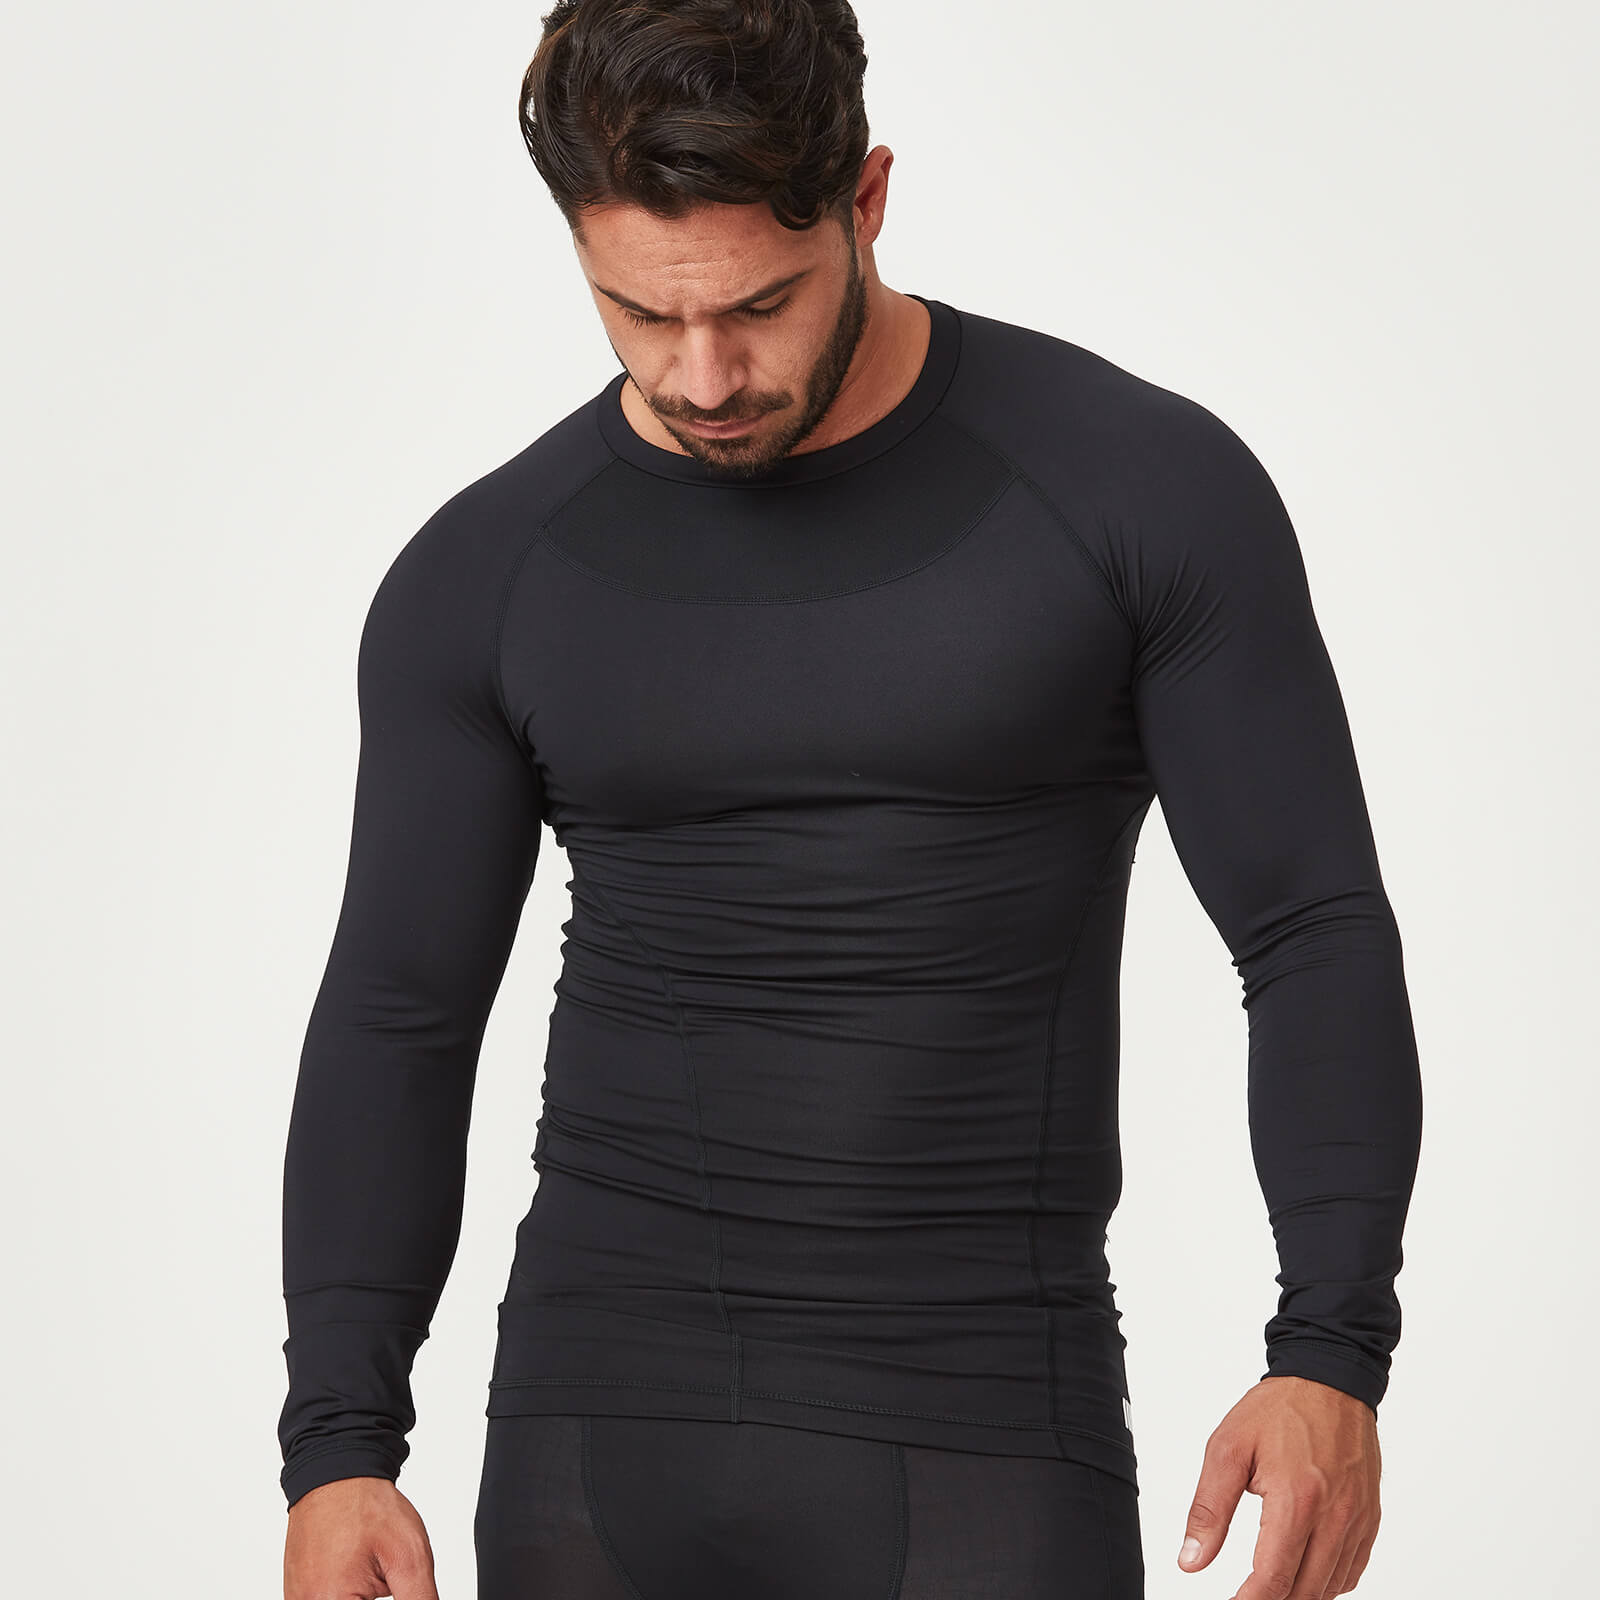 Myprotein Compression Long Sleeve Top - Black - S